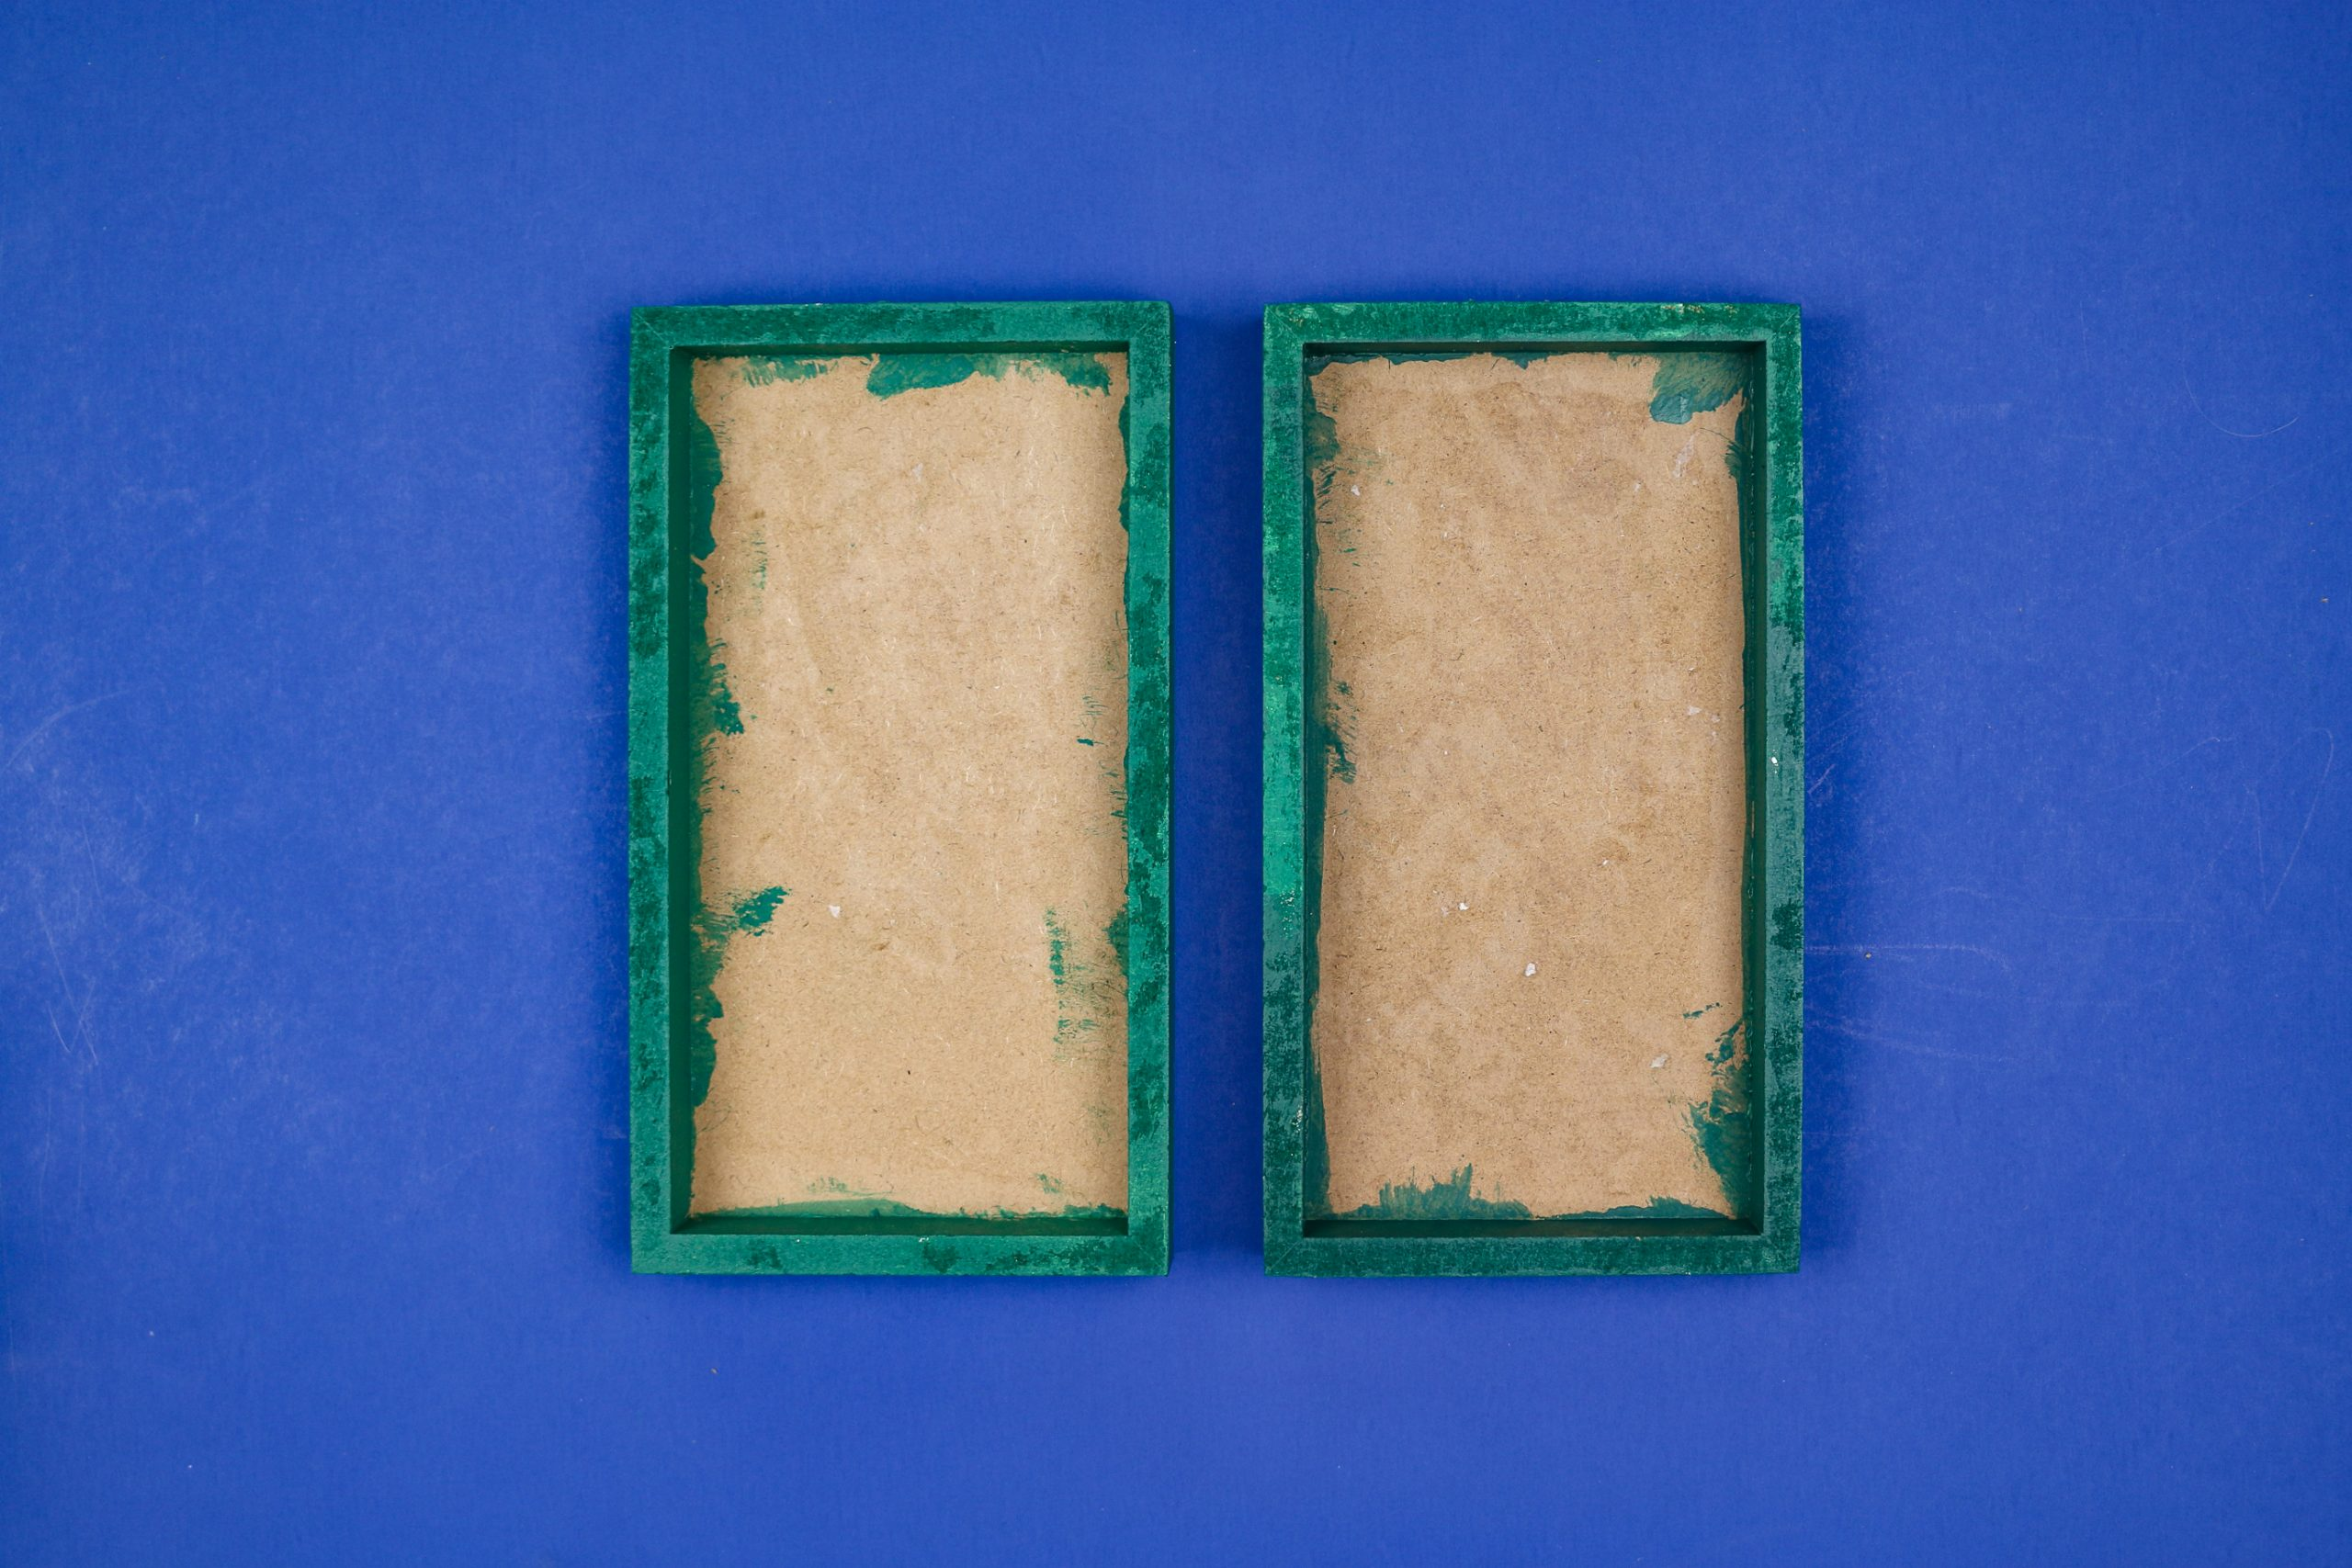 unfinished Green painted frames on a blue background